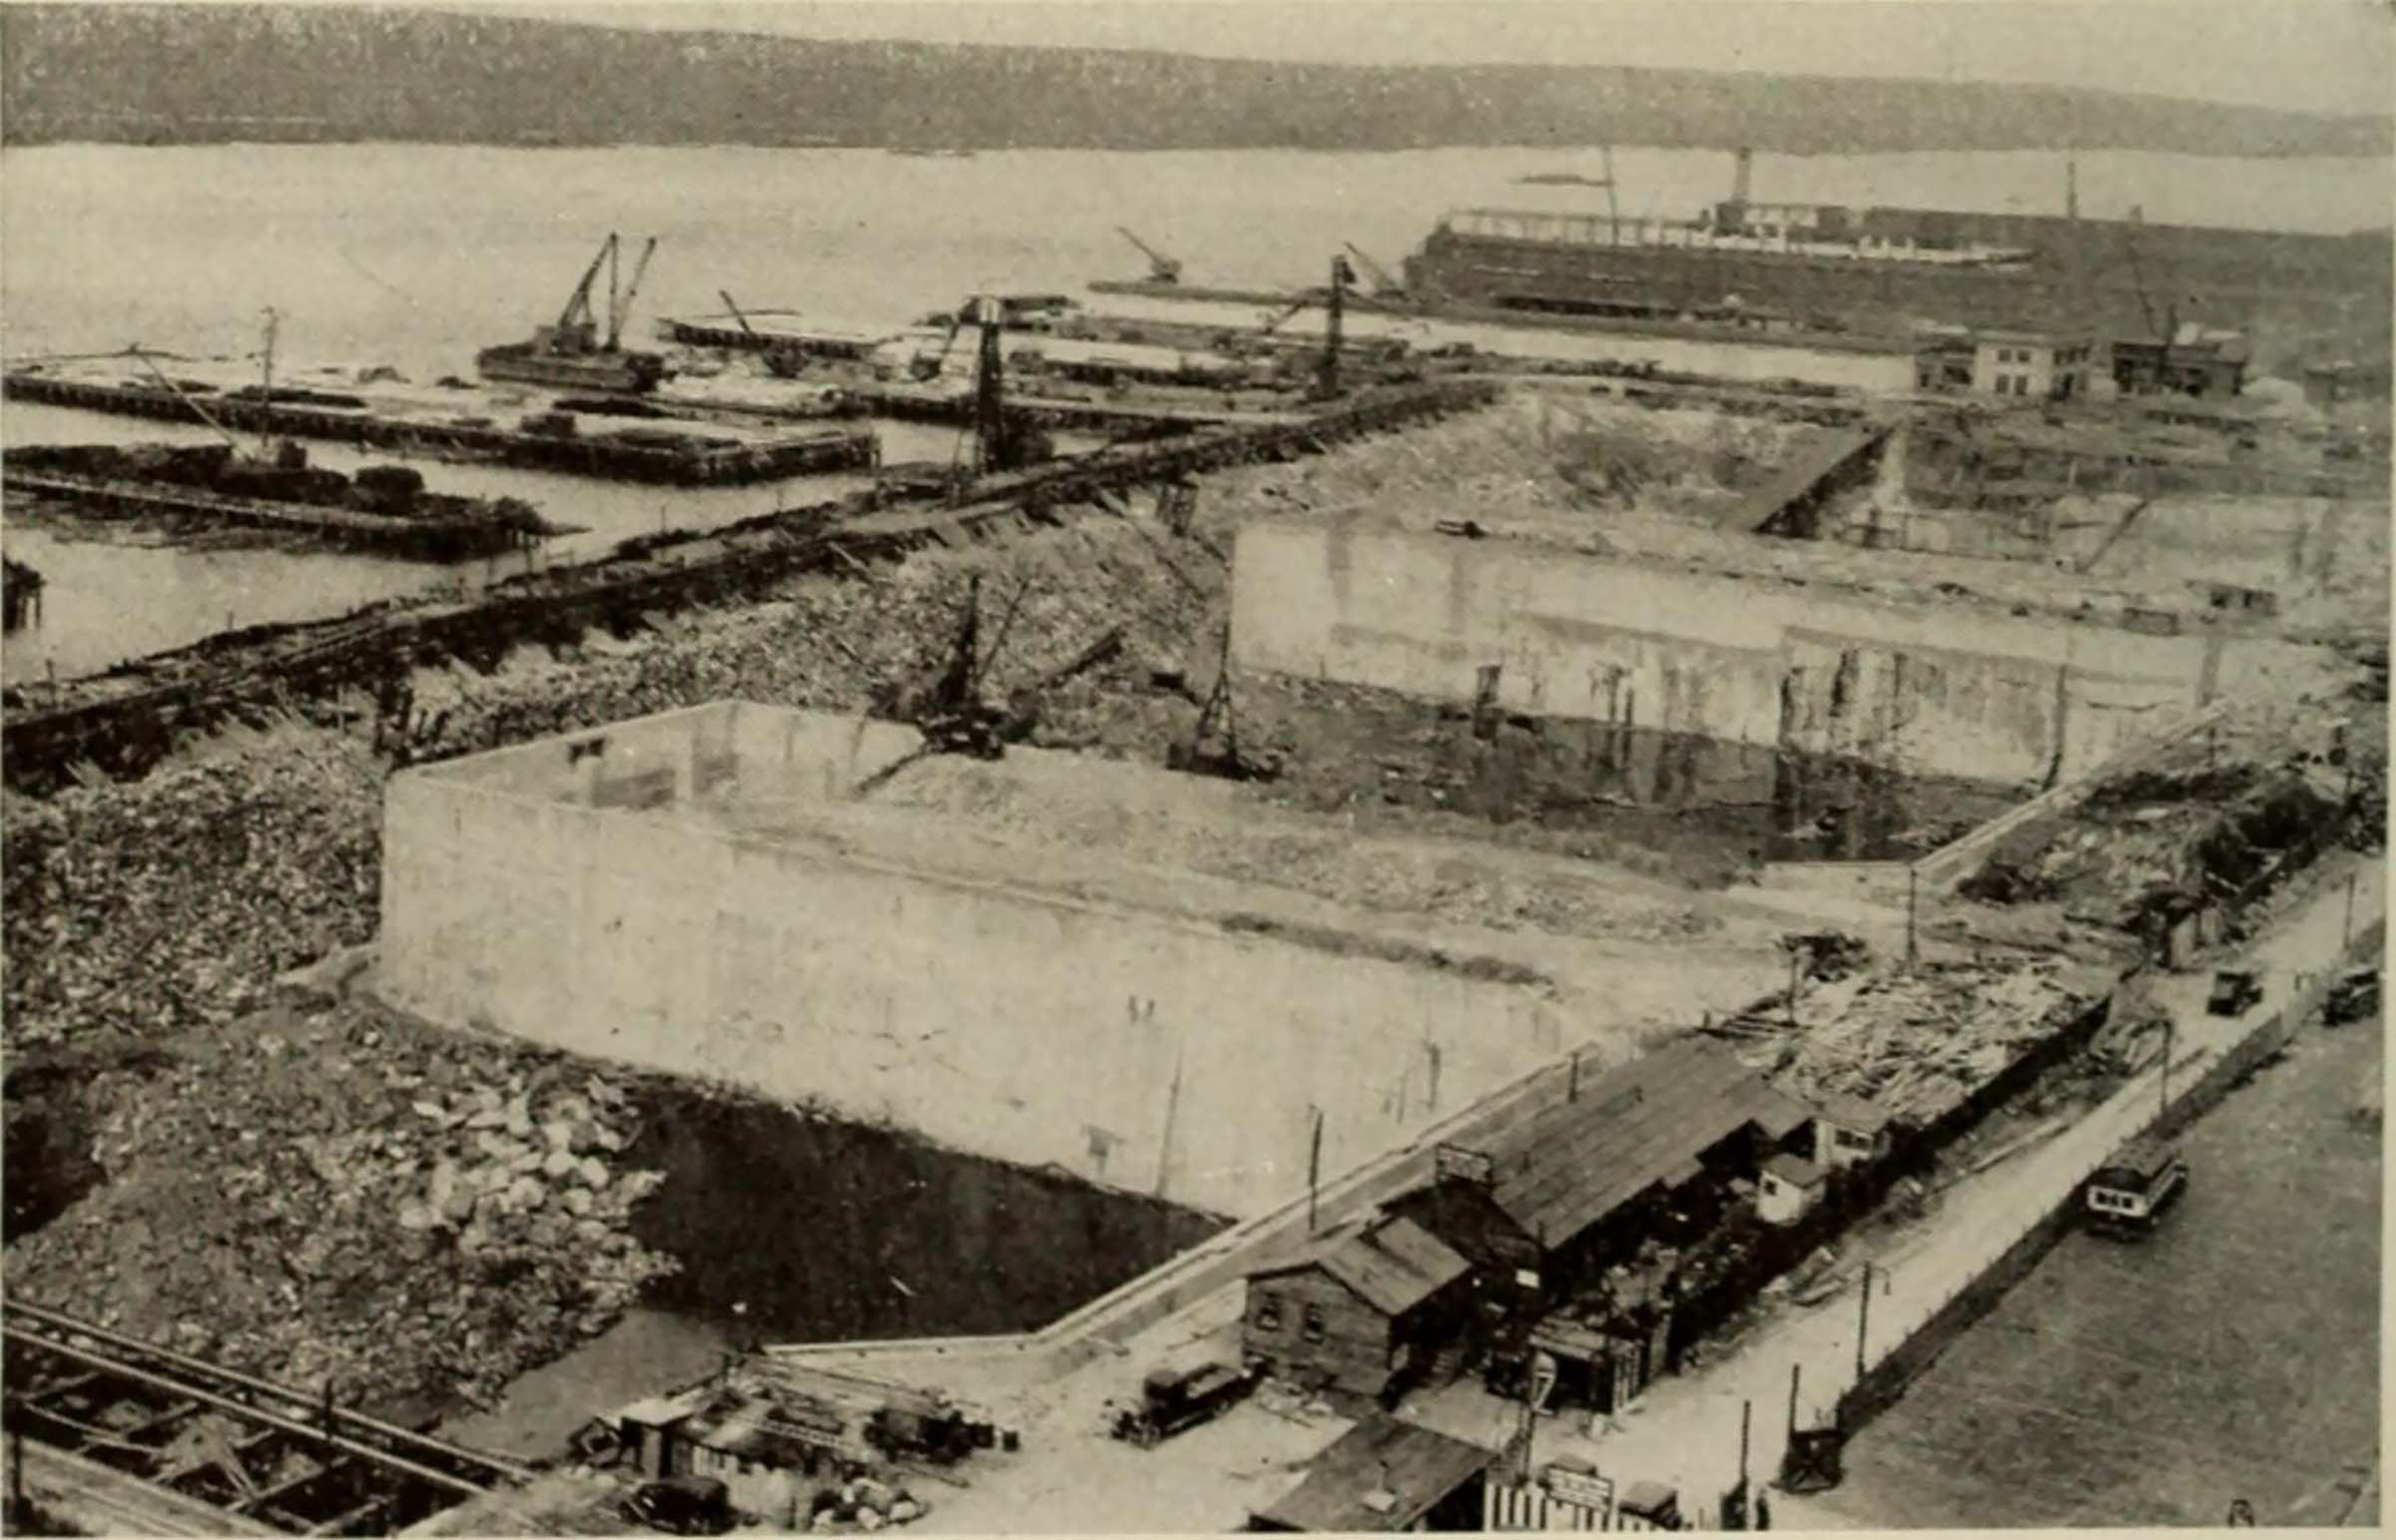 Historic image of the bulkhead and cement holdings